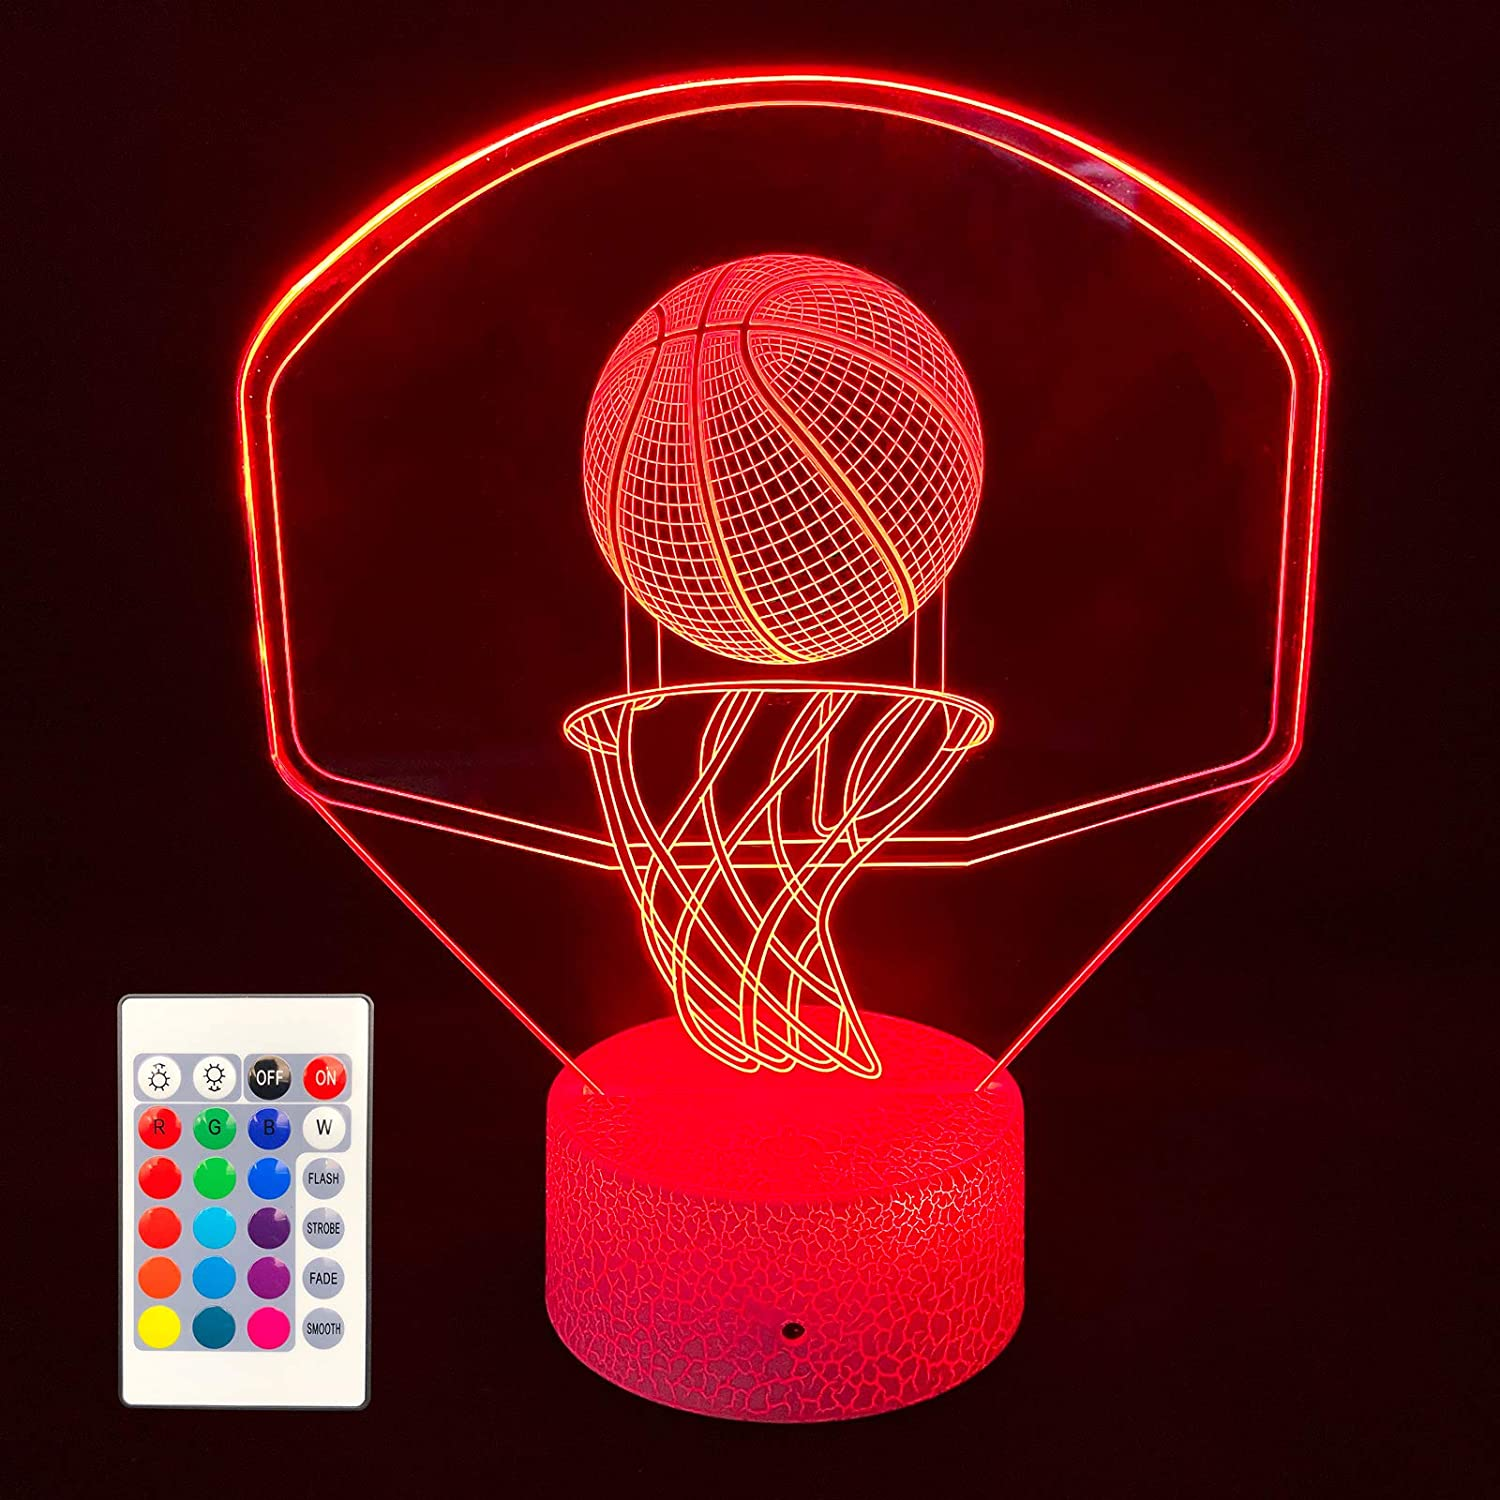 3D Illusion Lamp, Basketball Night Light Backboard Illusion Hoop Lamp for Kids 16 Colors Changing with USB Powered, Touch & Remote Control Room Decor Lighting Best Birthday Xmas Gifts for Boys Girls